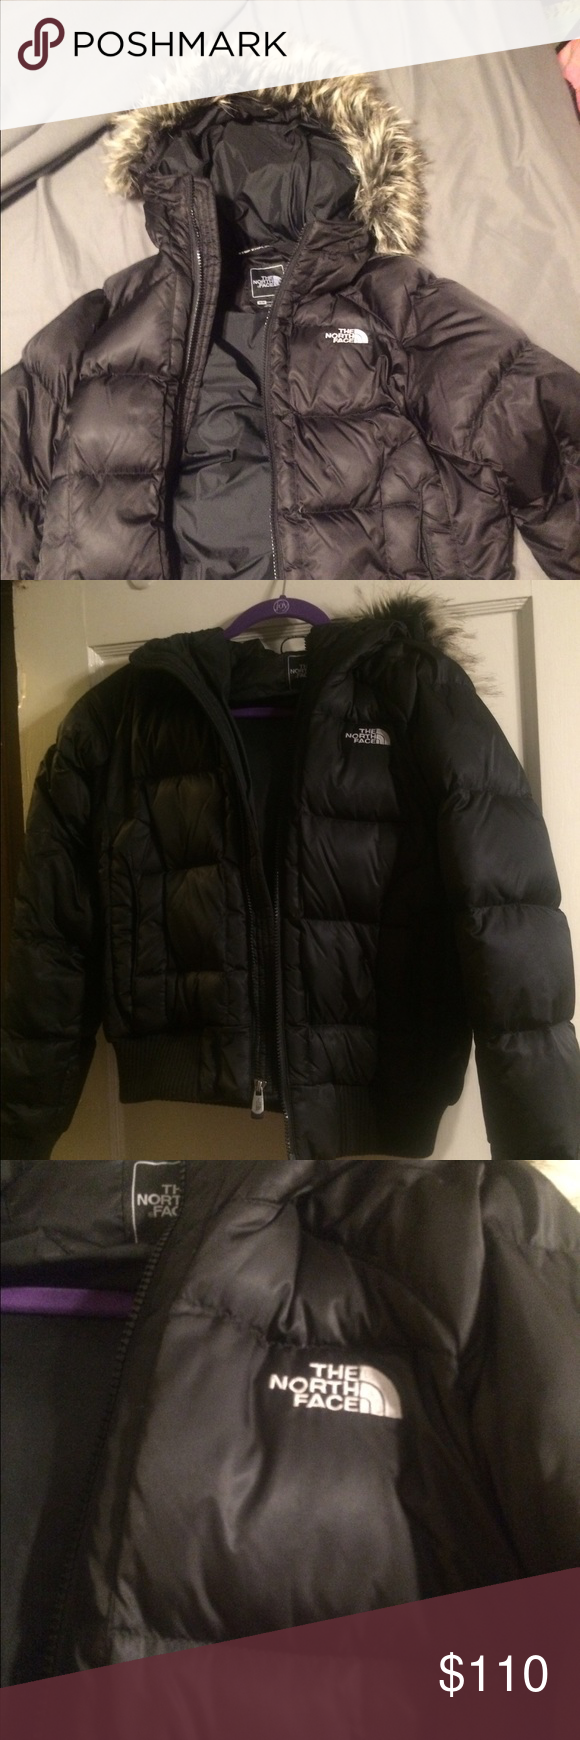 The North Face Bomber Style Puffy Winter Jacket Puffy Winter Jacket Winter Jackets Jackets [ 1740 x 580 Pixel ]